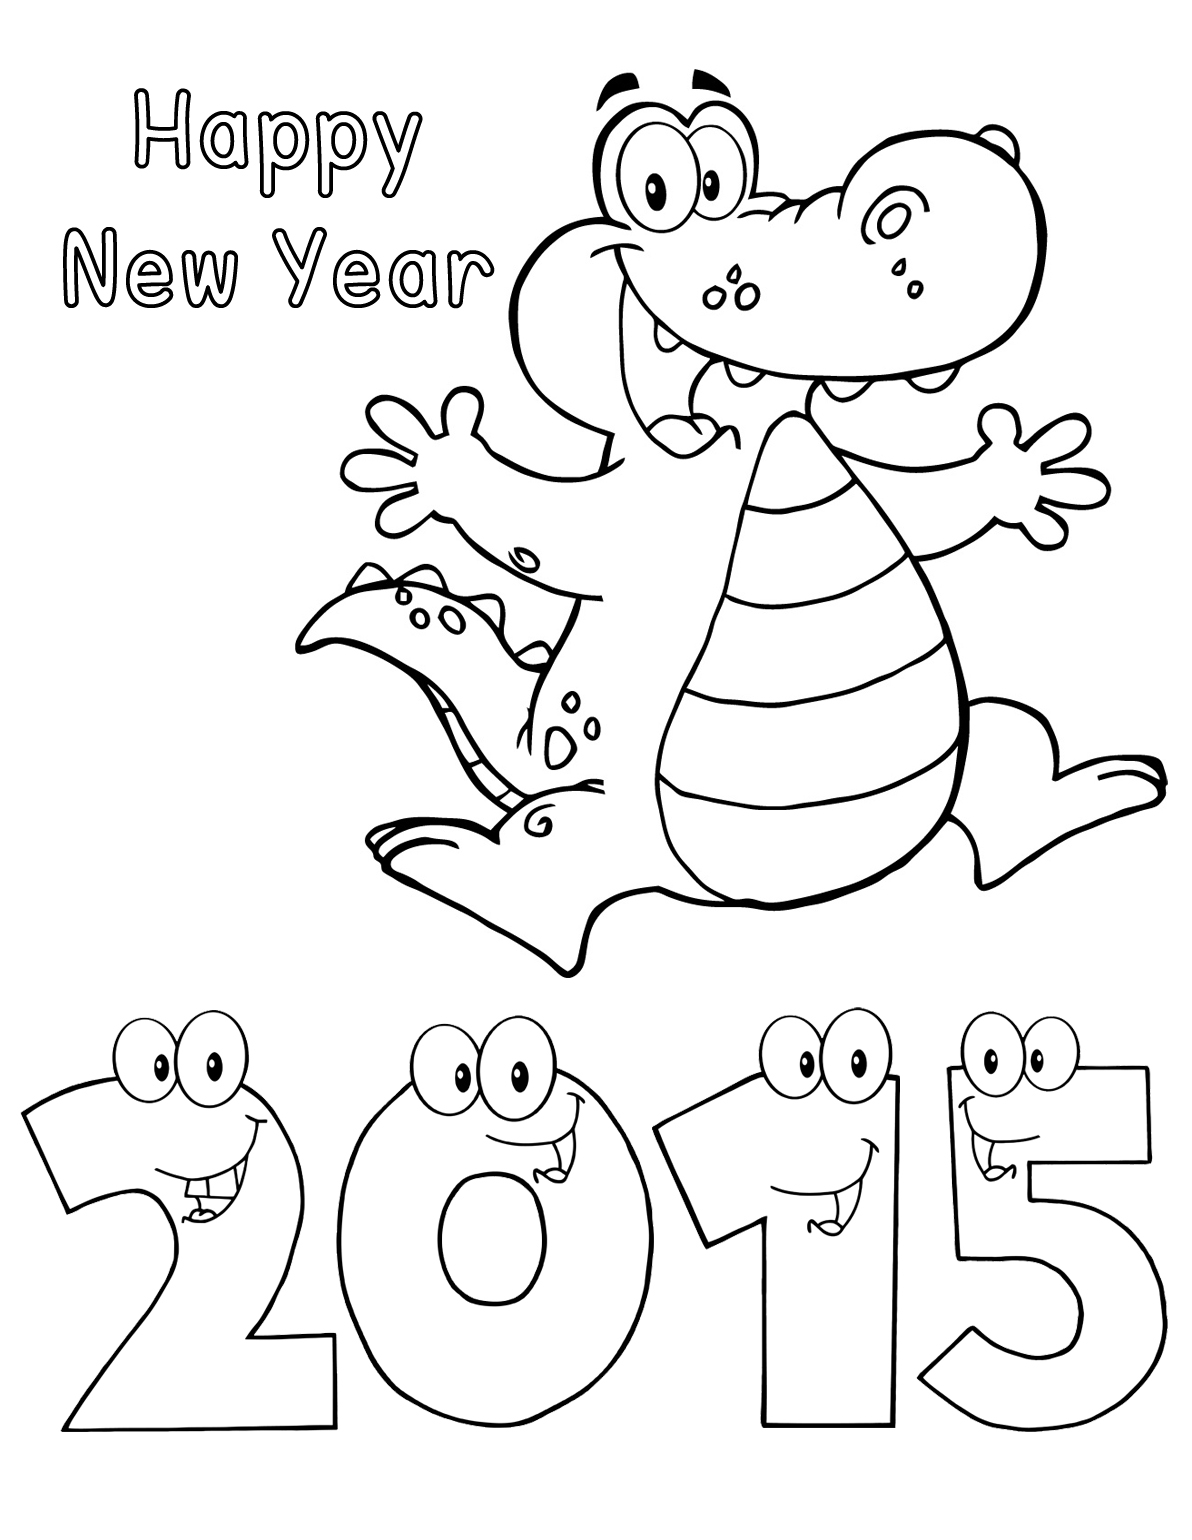 2015_Coloring_Pages_01